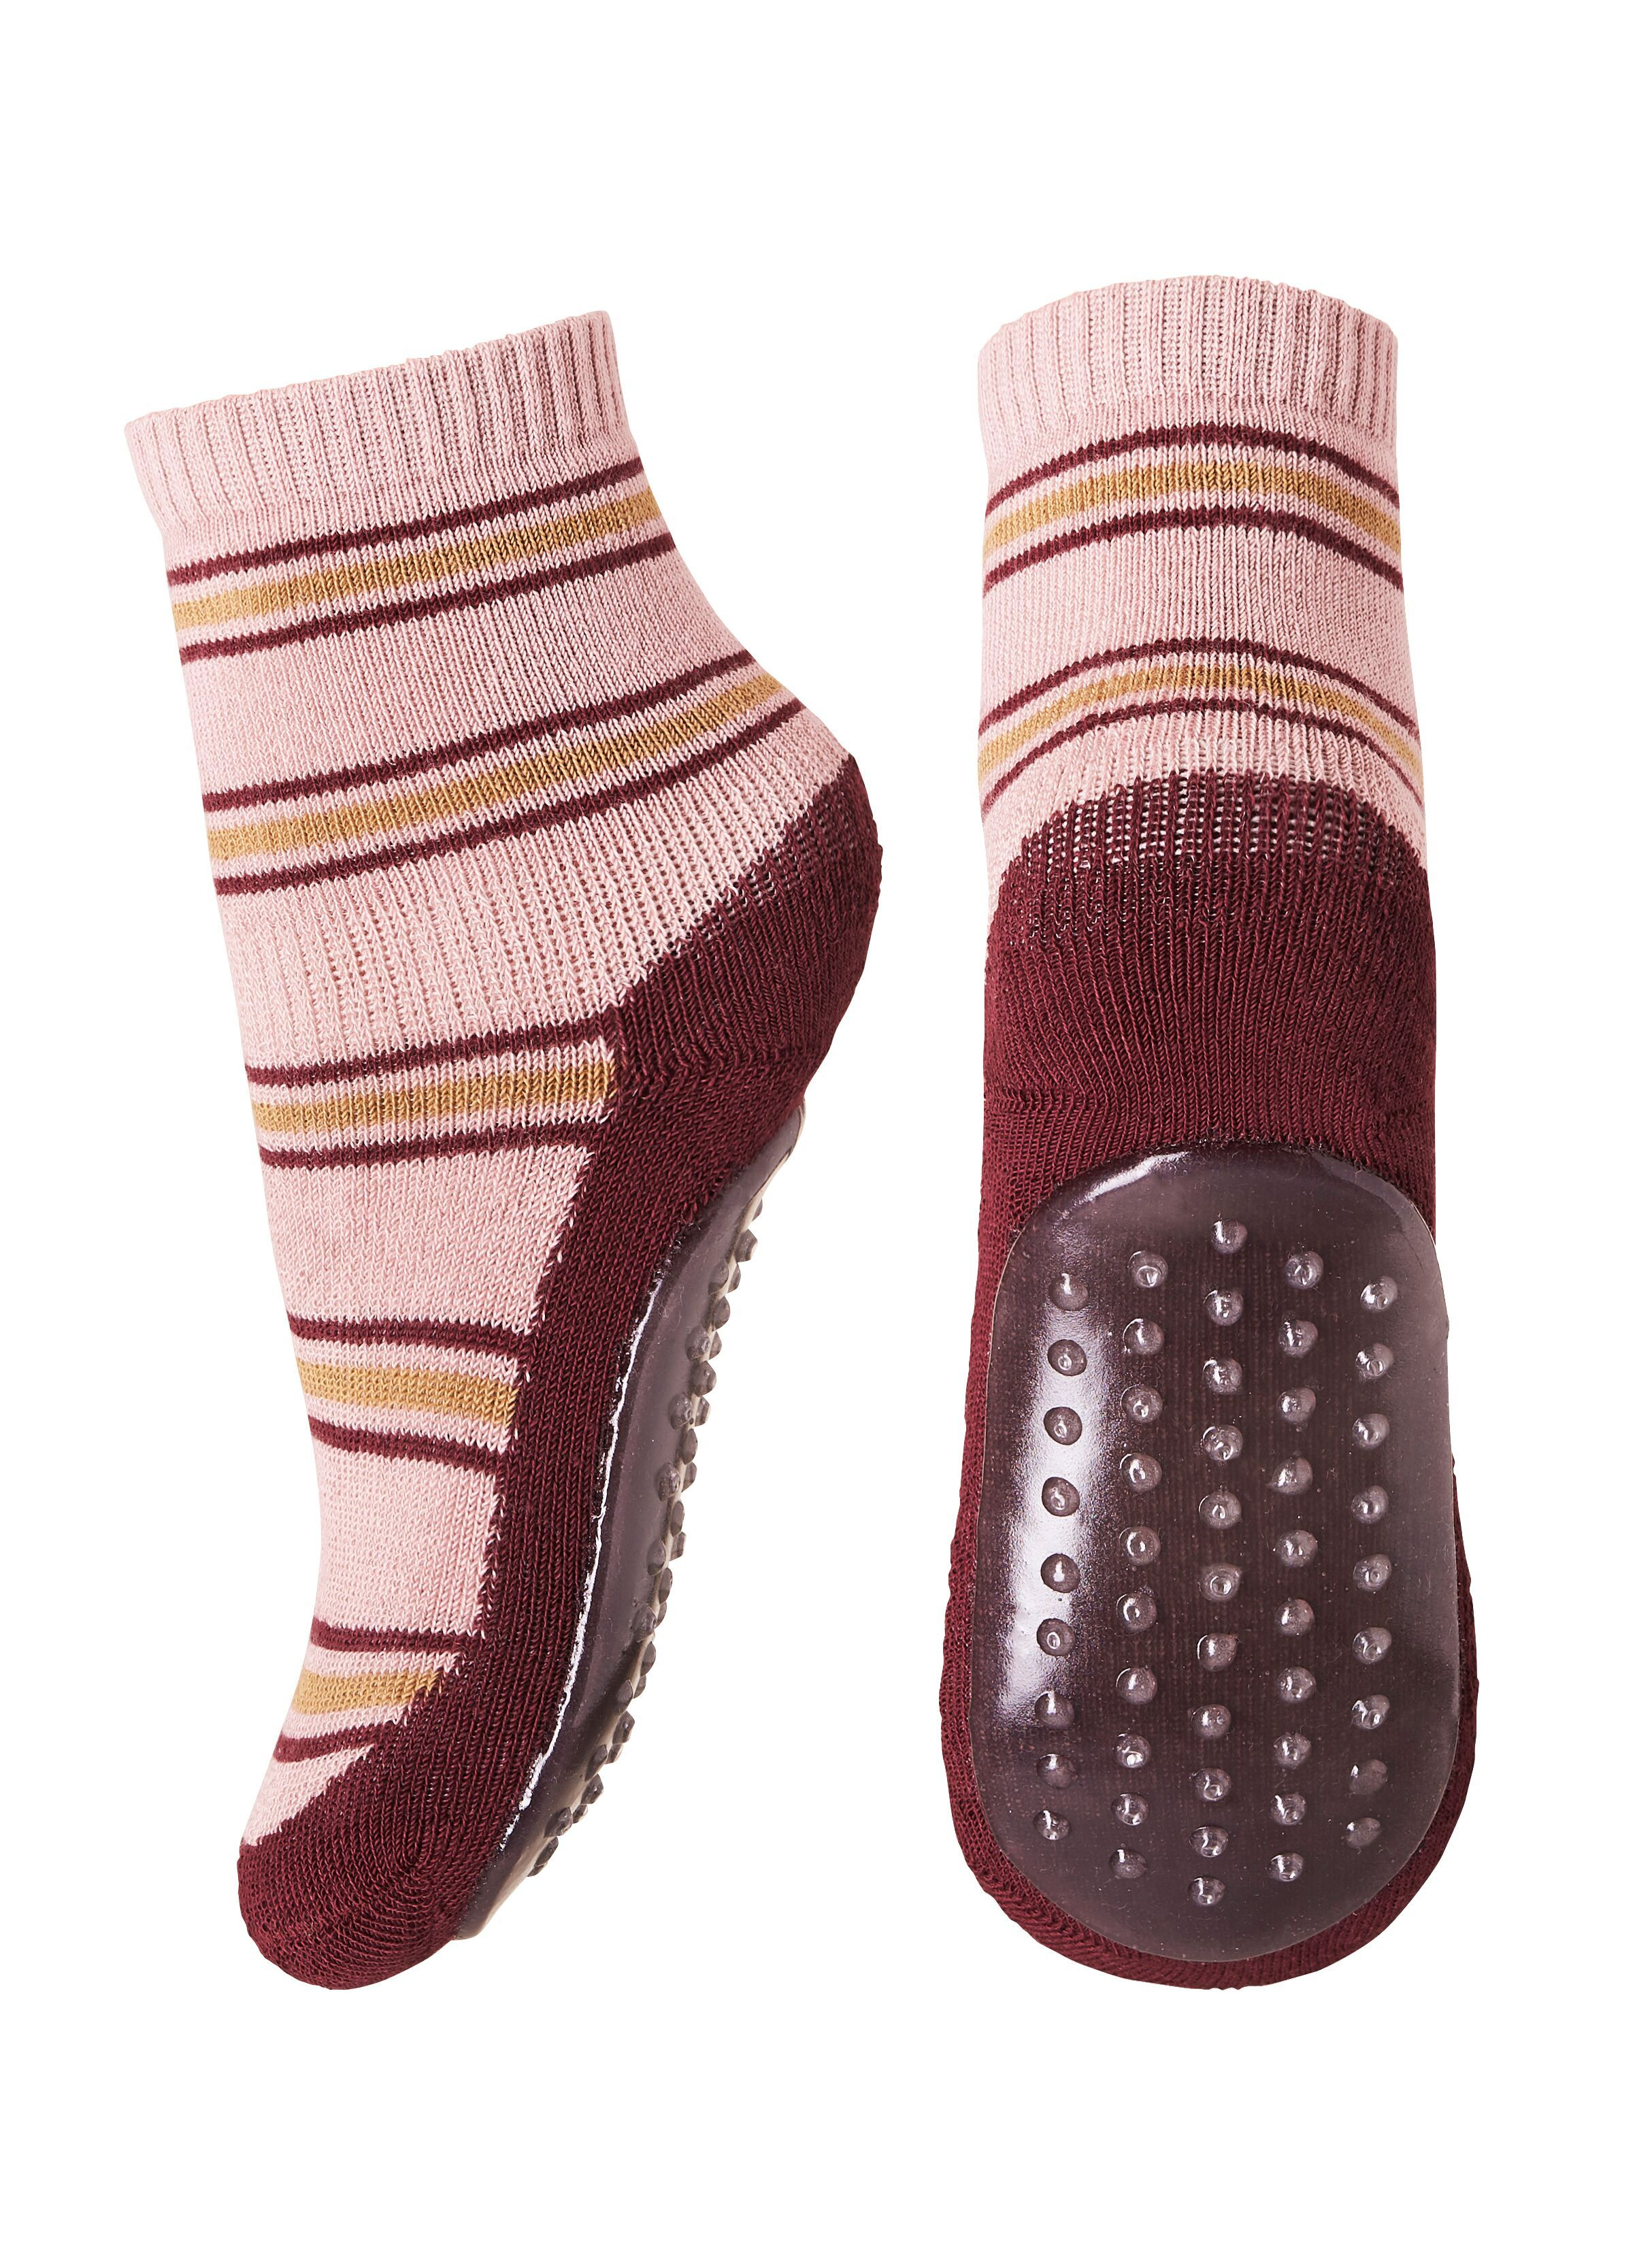 Ankle Socks Kyoto Terry/Sole Striped Rose - Zirkuss